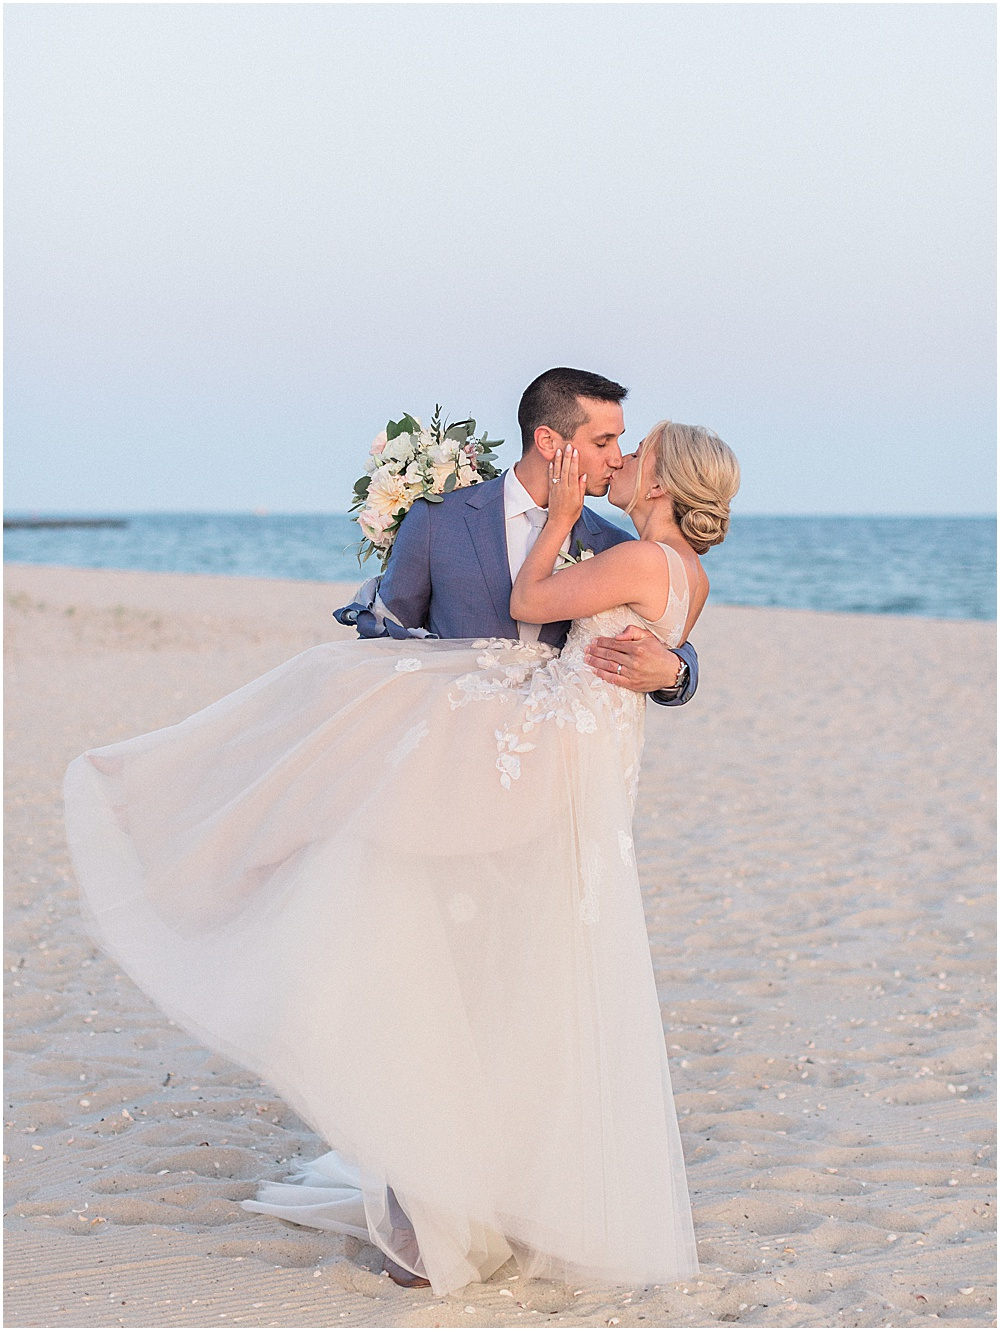 wychmere_beach_club_emily_kevin_beach_plum_floral_french_blue_cape_cod_harwichport_massachusetts_boston_wedding_photographer_meredith_jane_photography_photo_0562.jpg